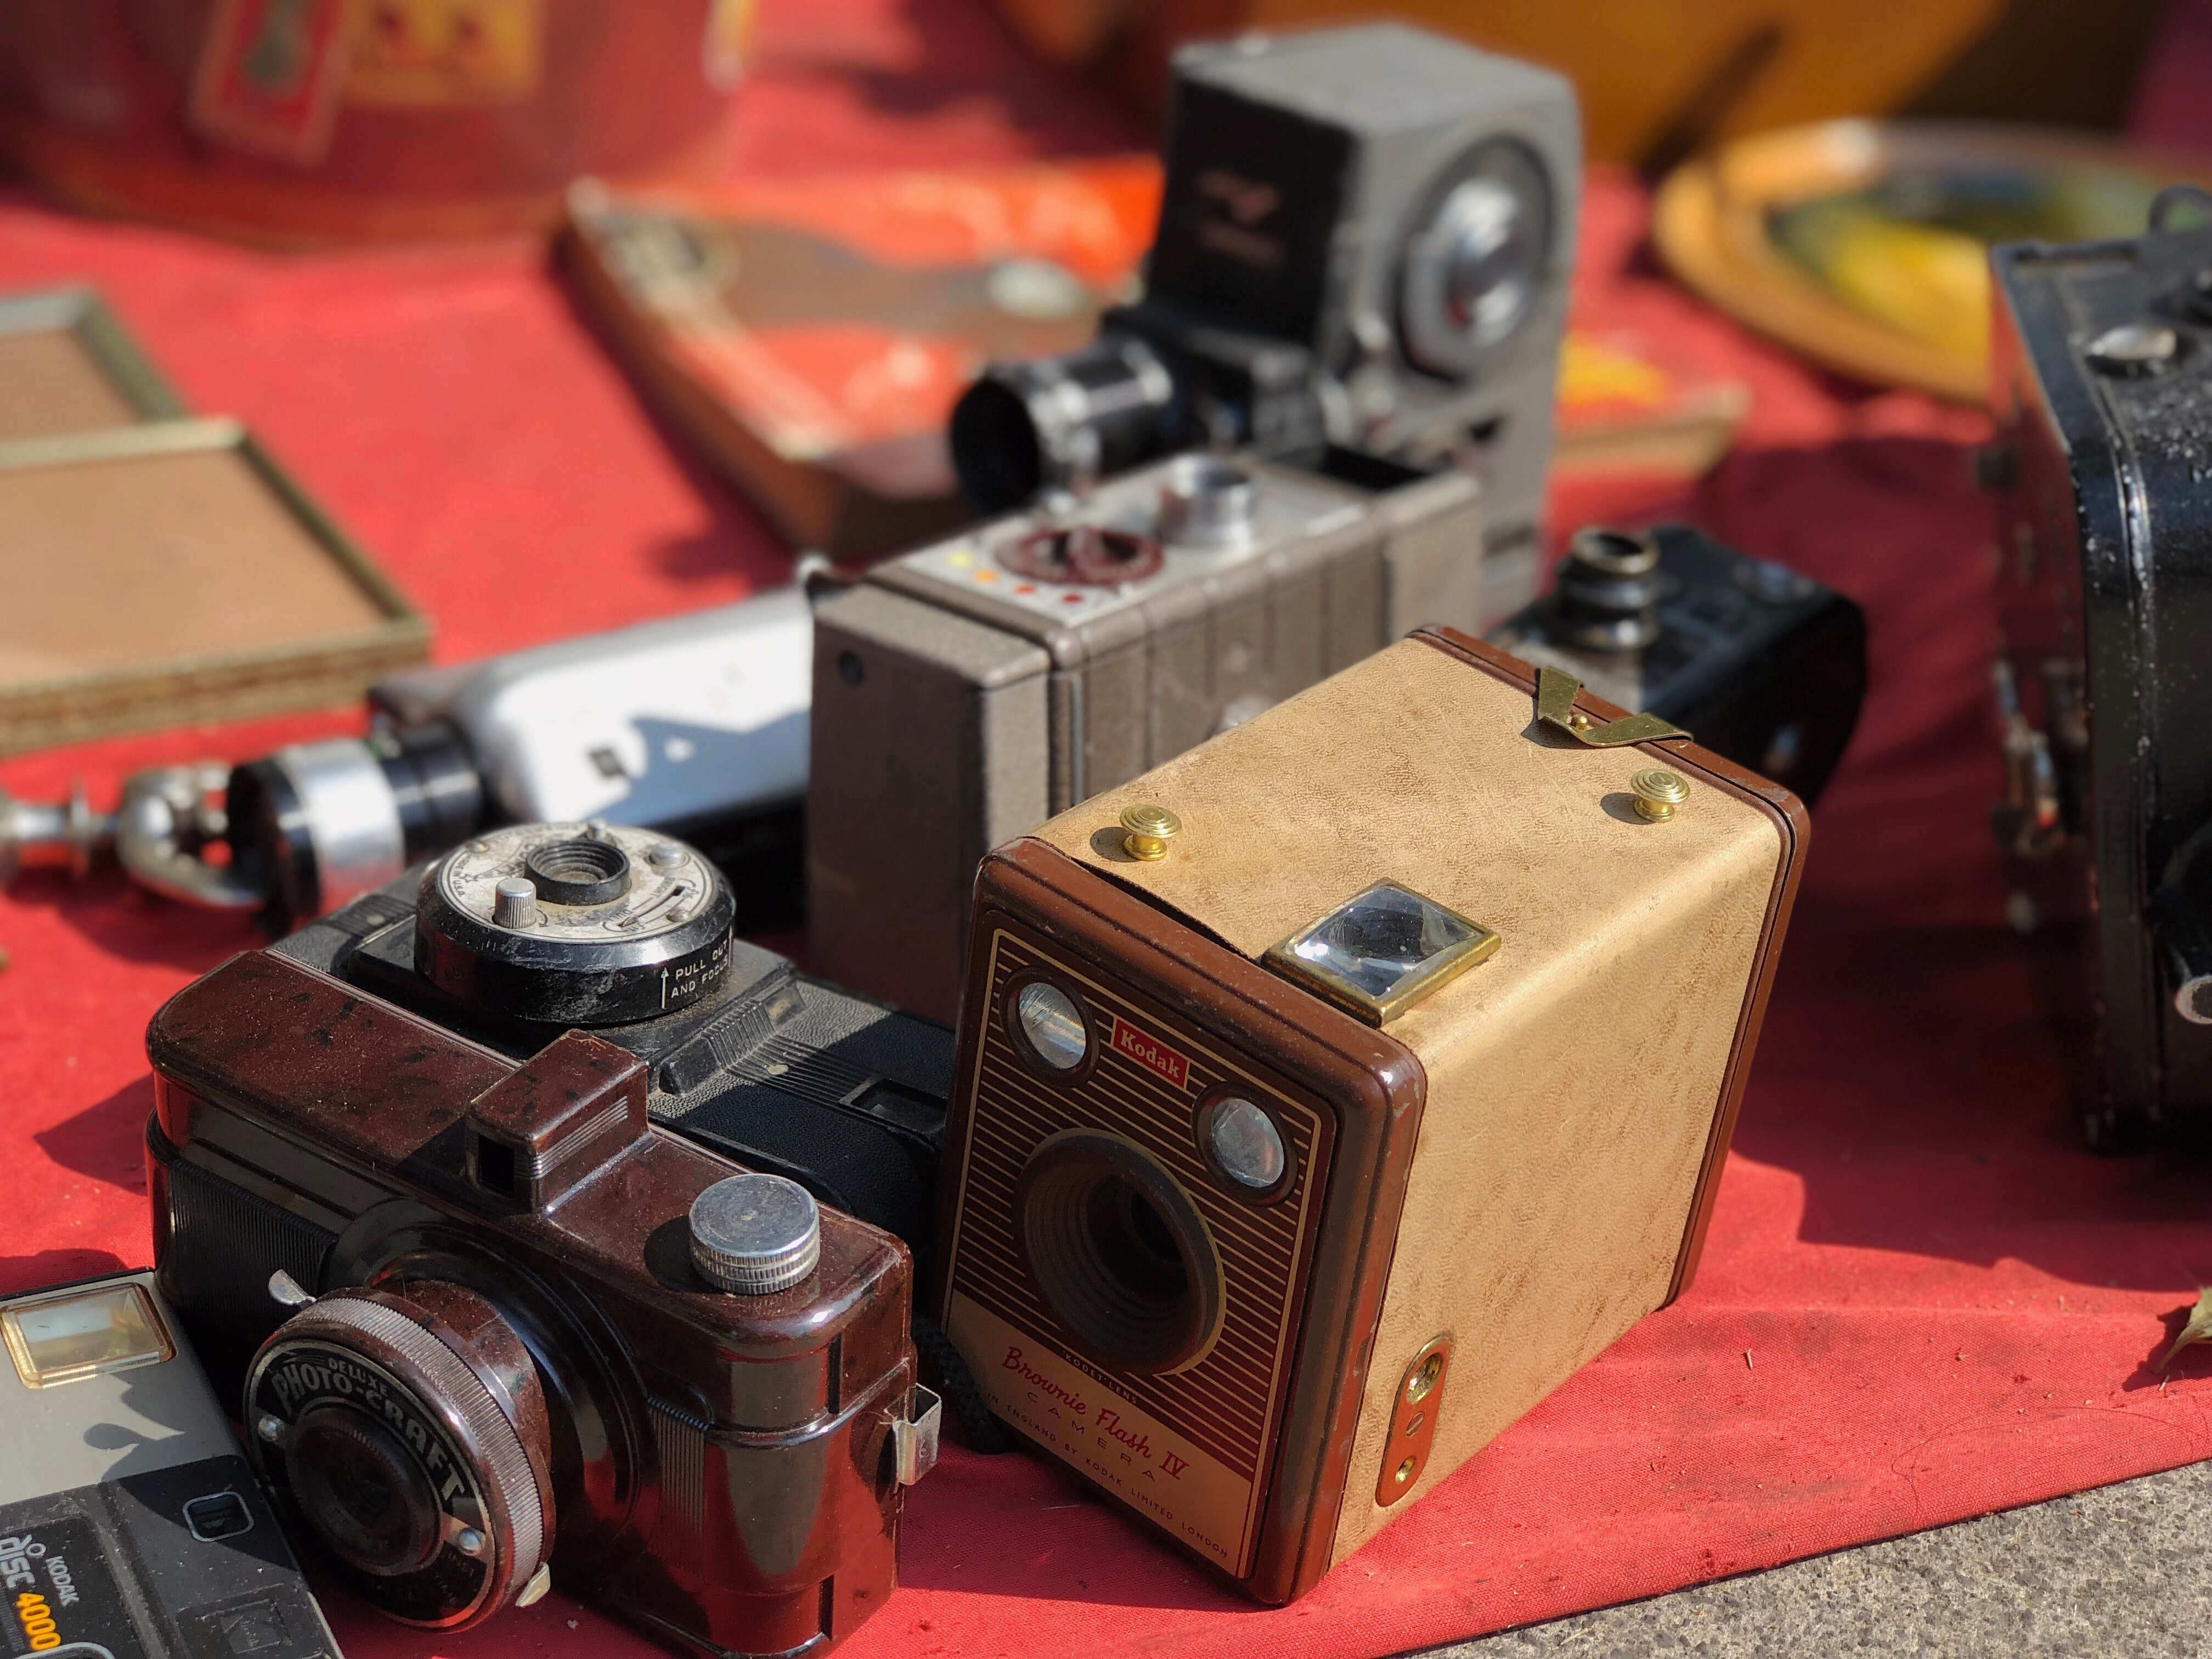 brown point-and-shoot camera